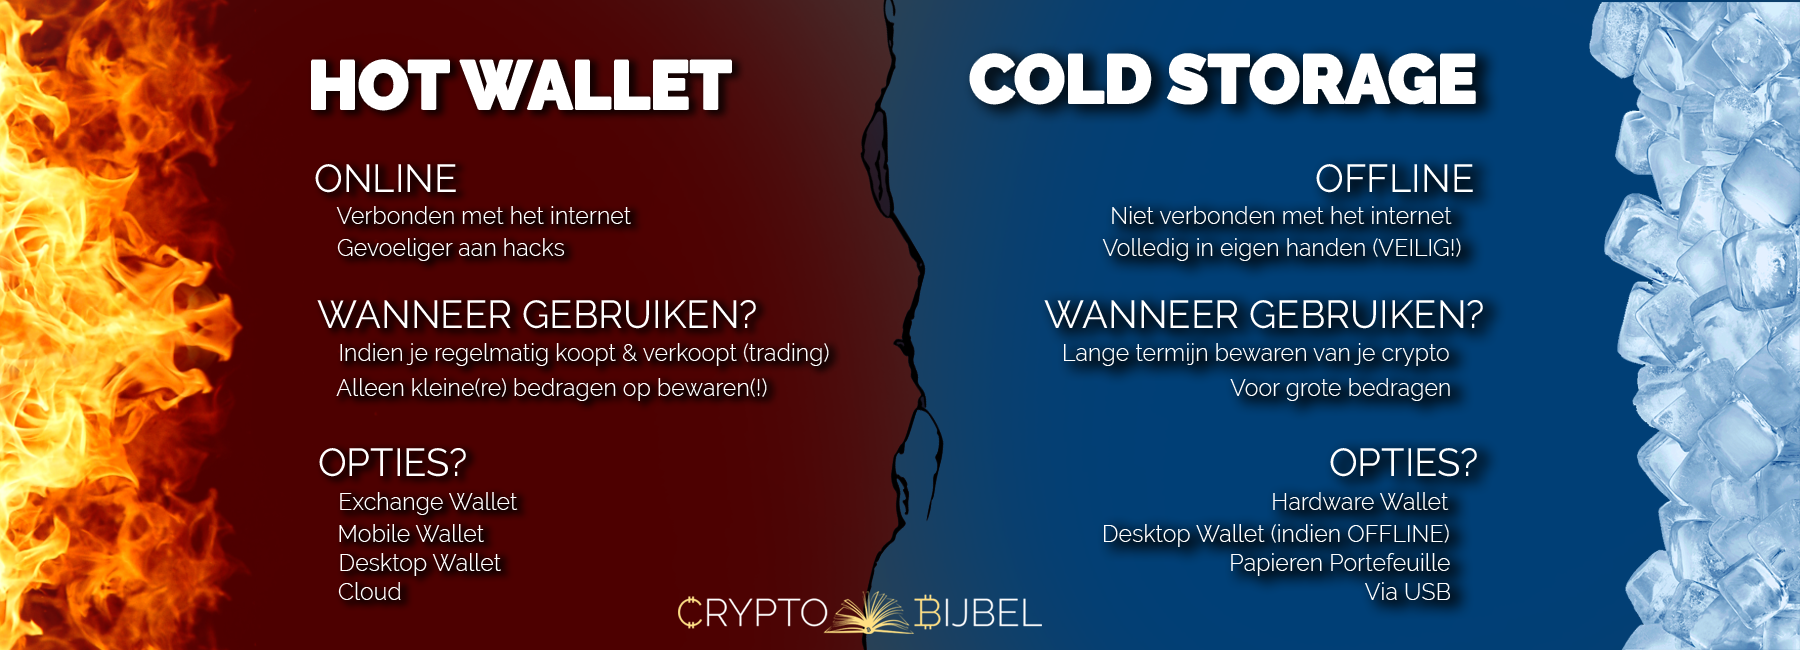 Hot Wallet vs Cold Storage Infographic